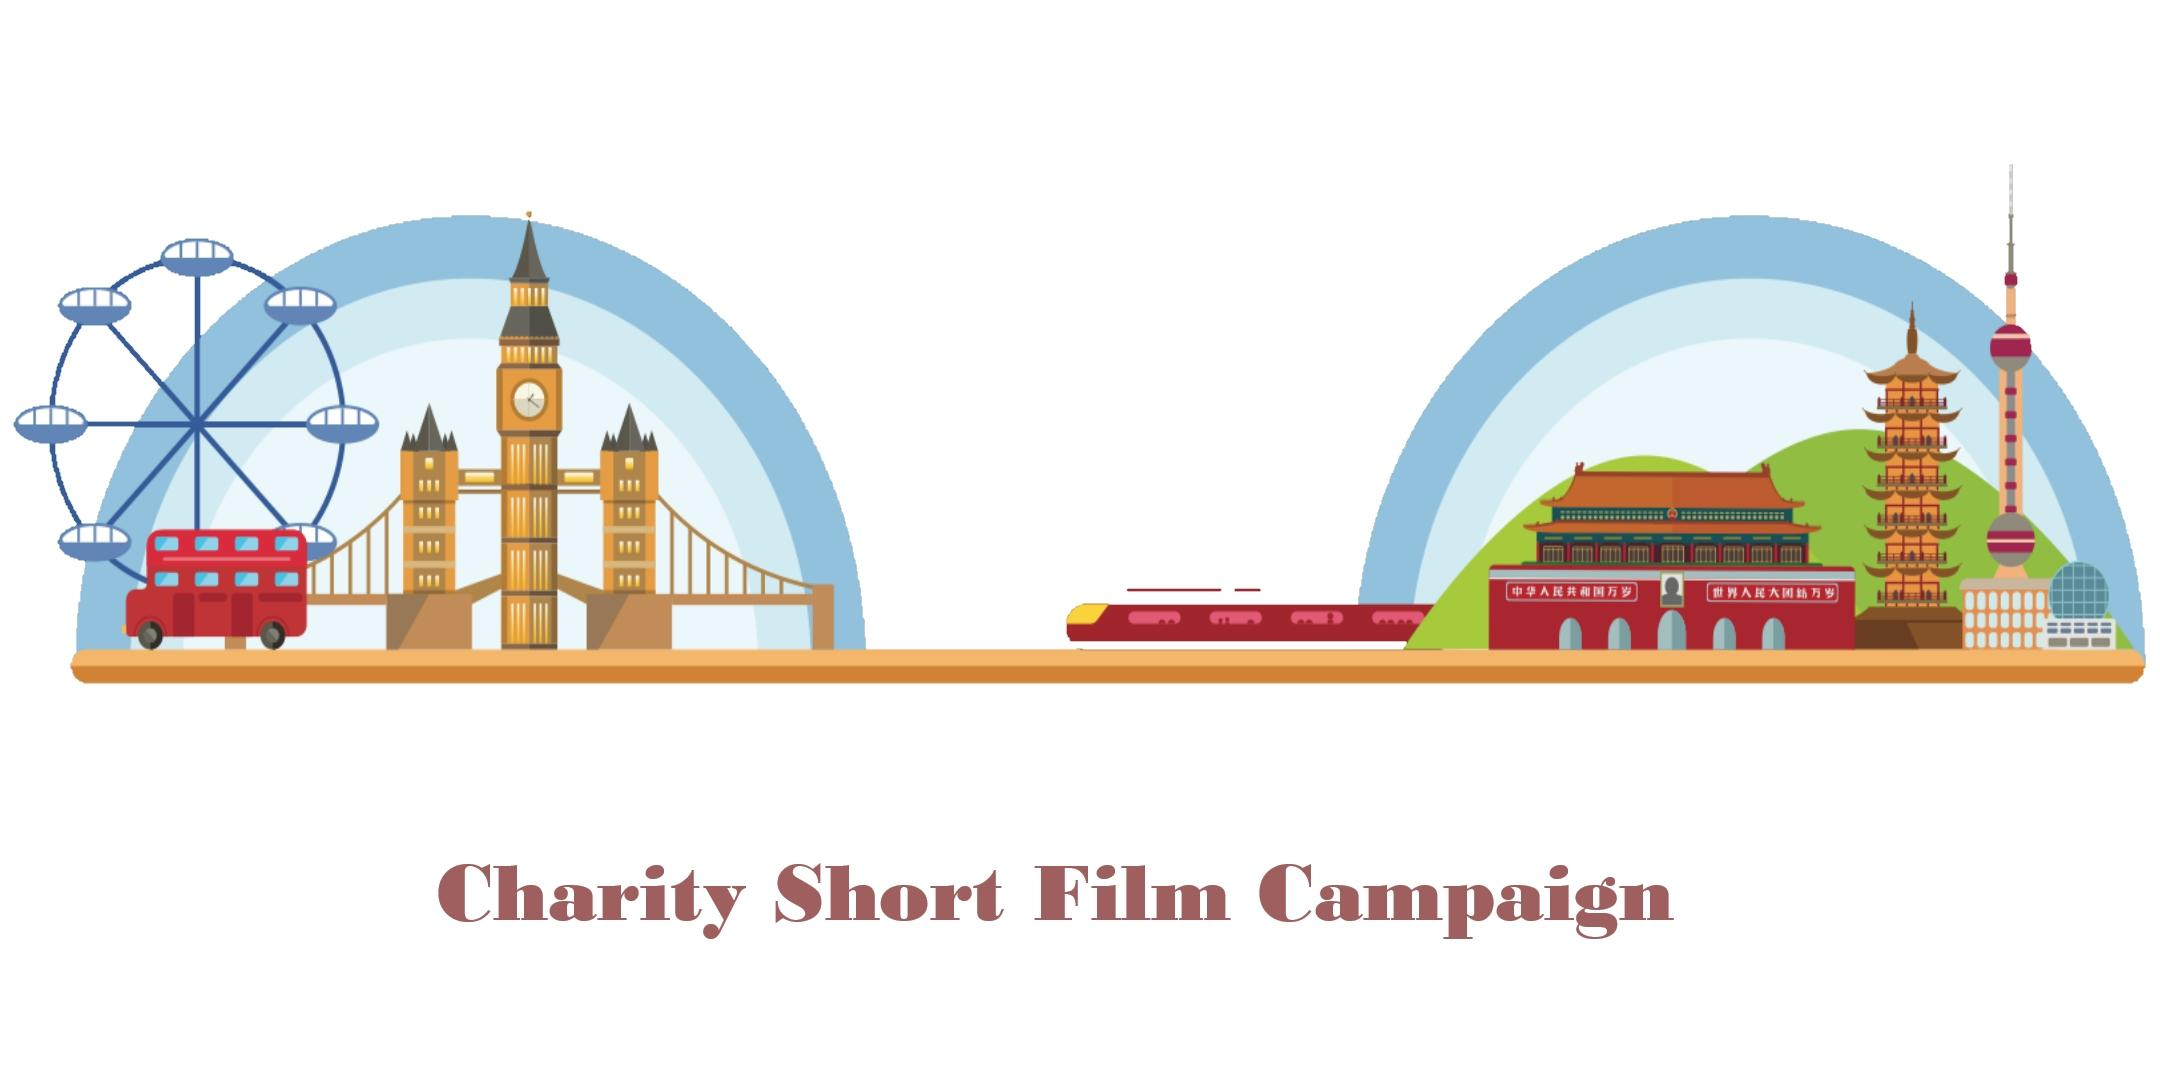 Charity Short Film Campaign